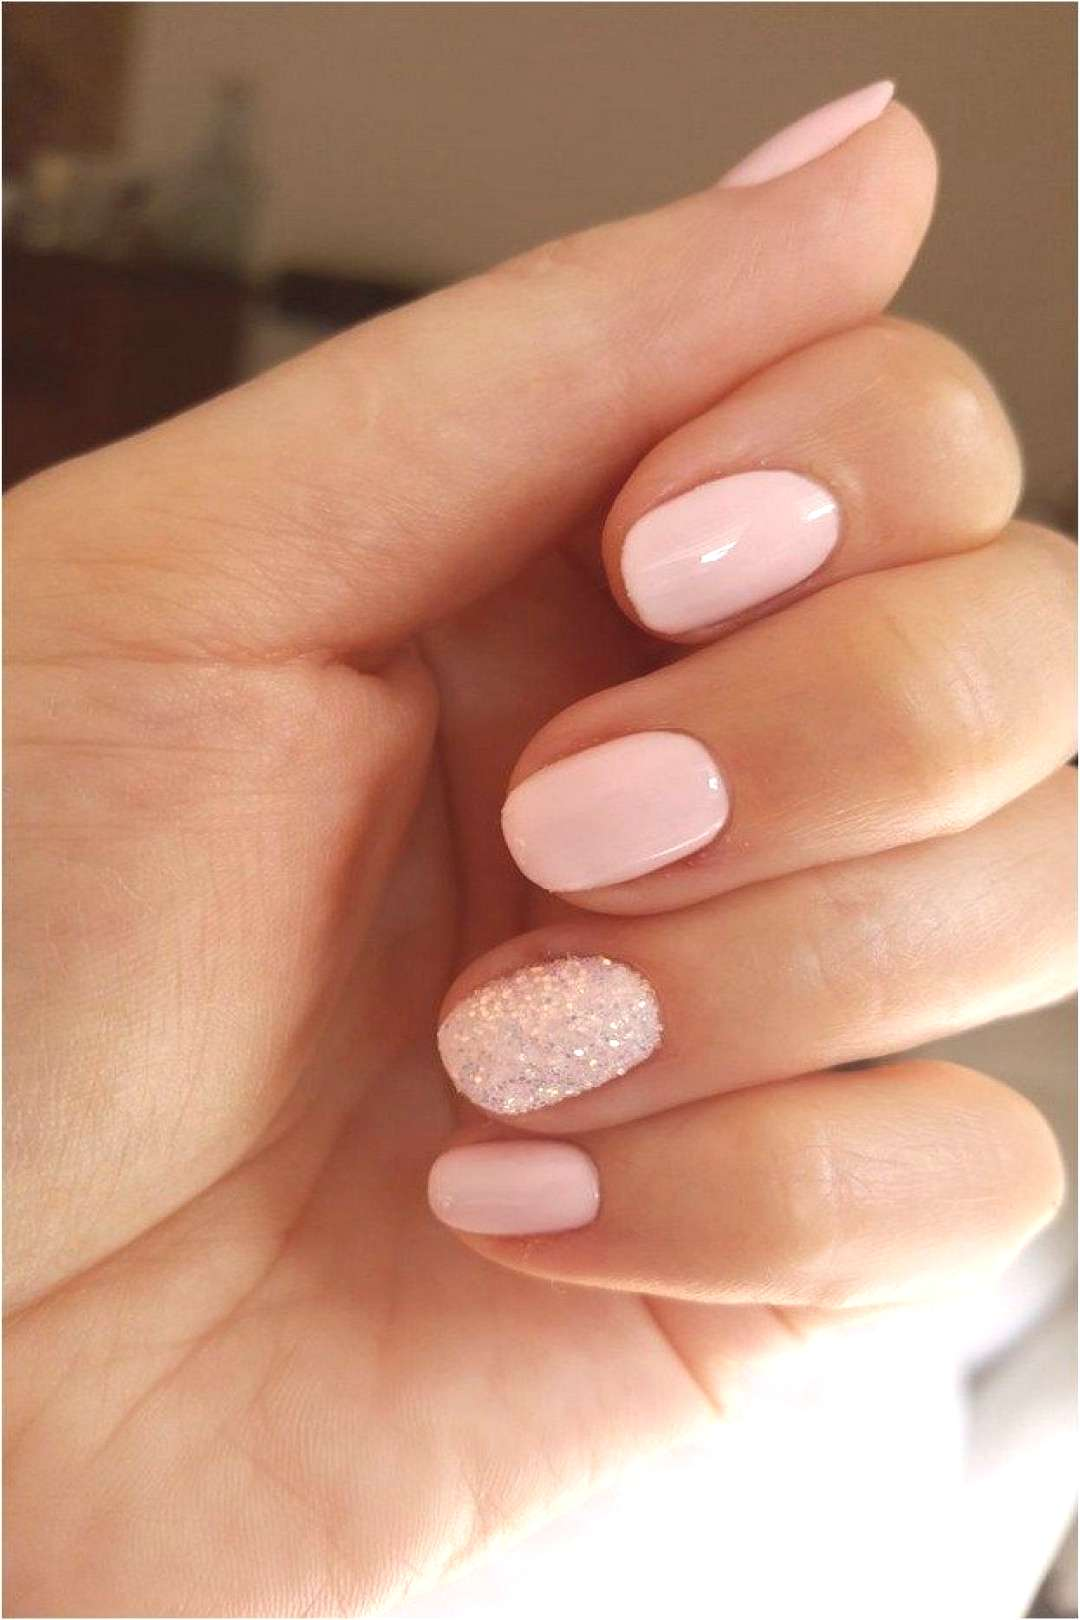 Nails ❤55 glitter gel nail designs for short nails for spring 2019 22        55 Glitzer-Gel-Nagel